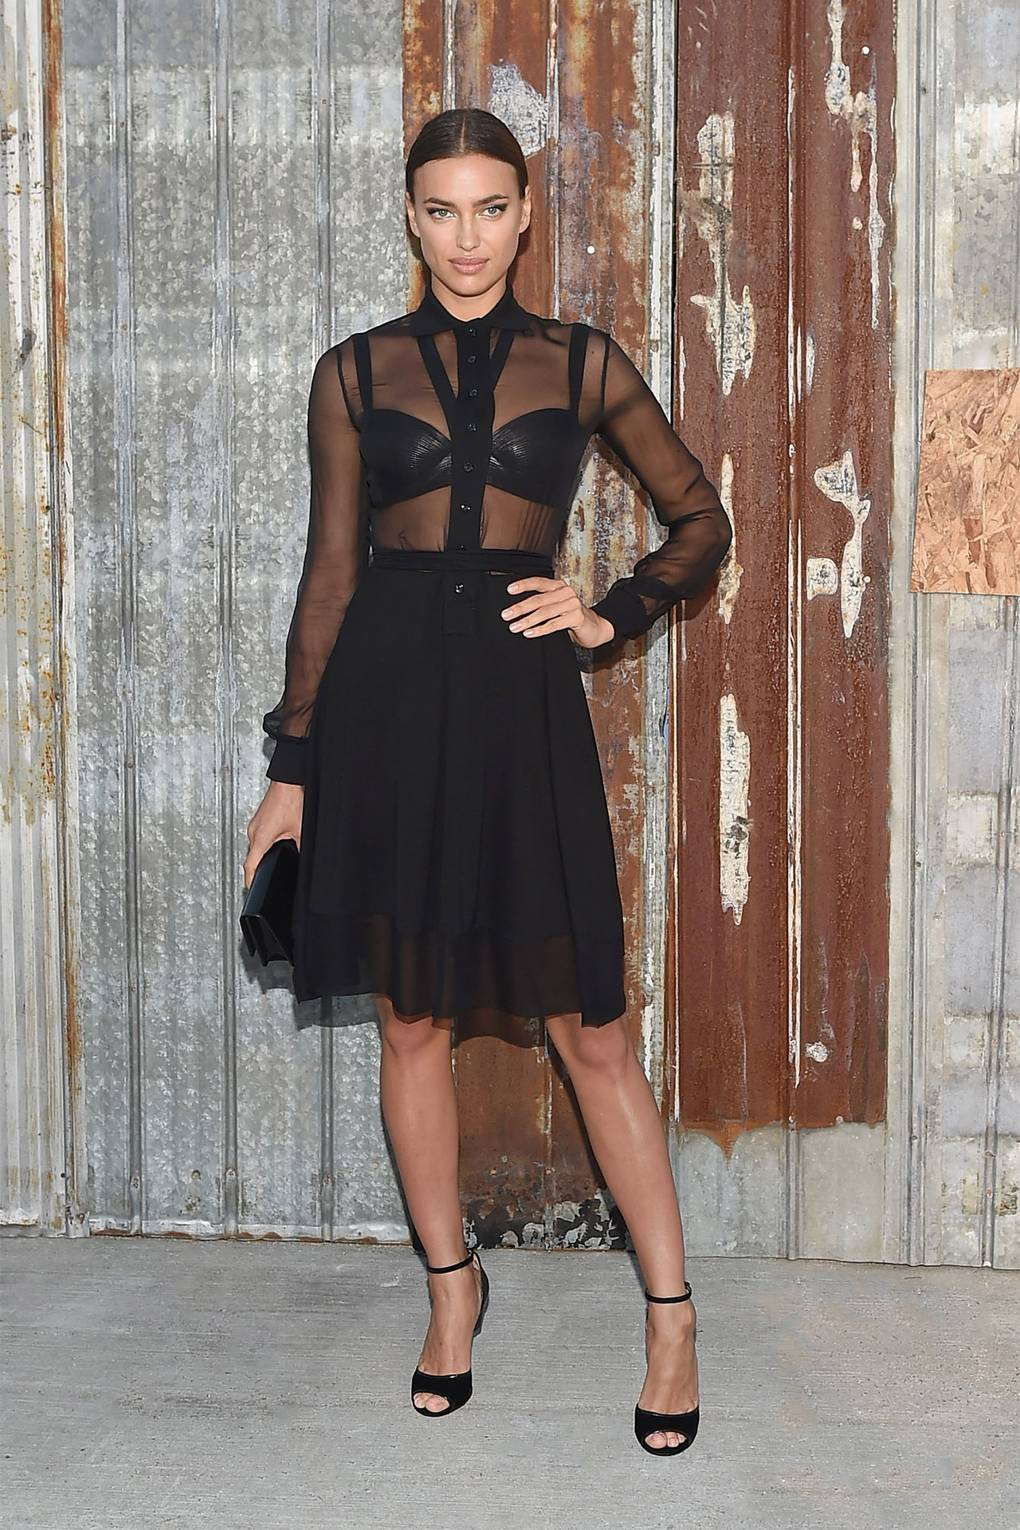 d60d7111ff5 Irina Shayk s best outfits according to Vogue